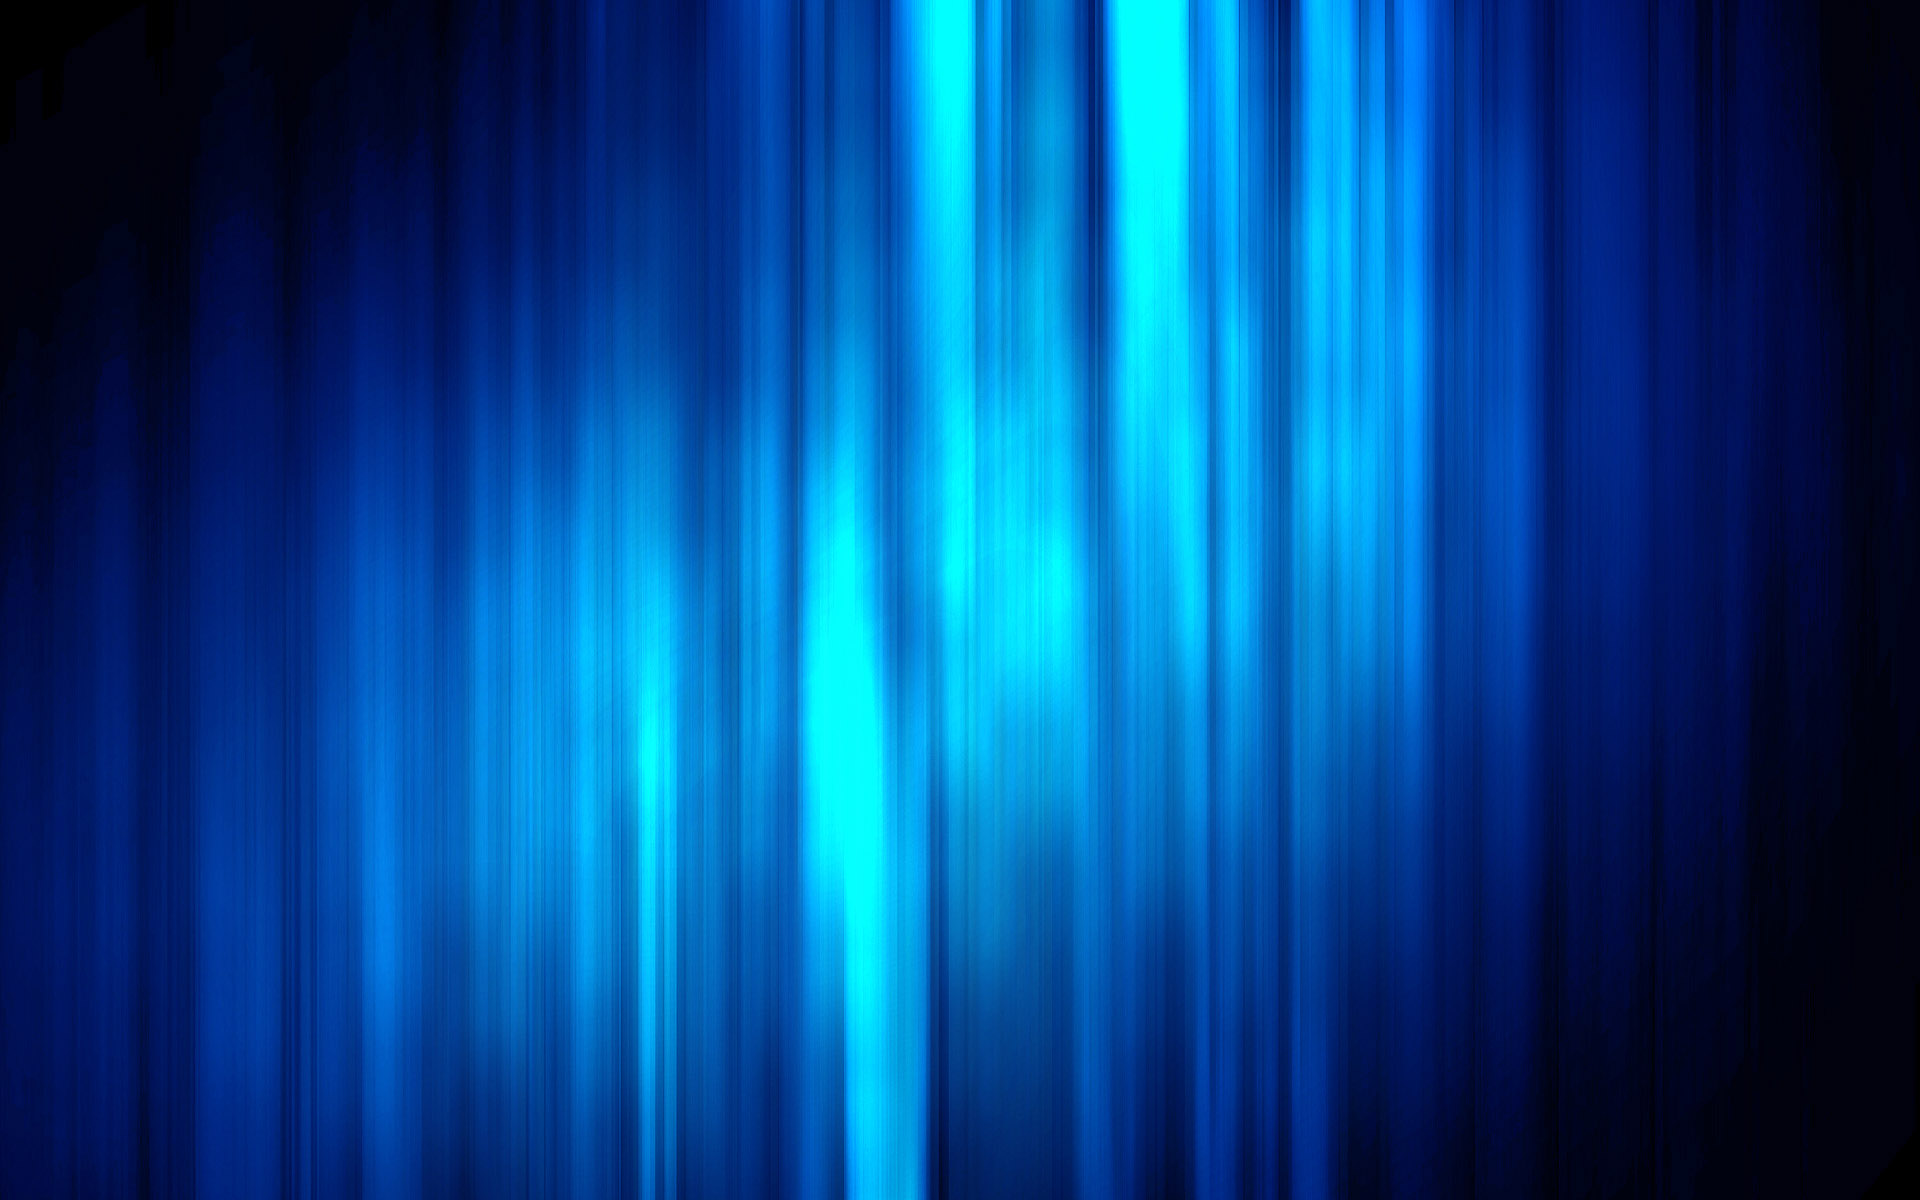 hd color background wallpaper 18033 - background color theme